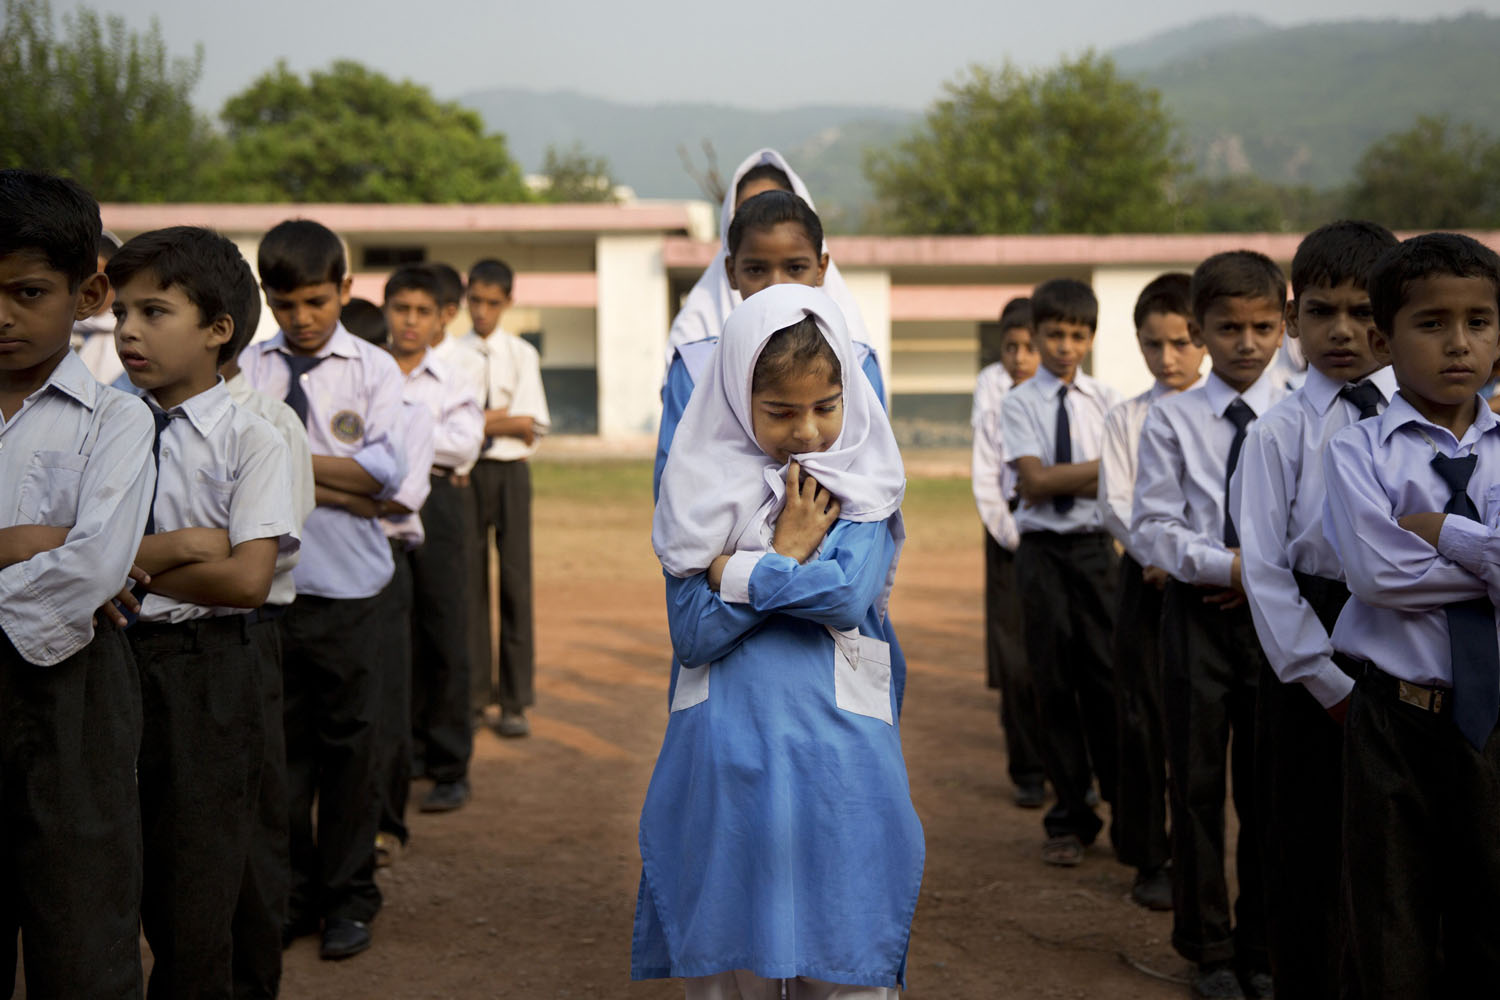 Oct 11, 2013. A Pakistani girl lines up among boys for their morning assembly where they sing the national anthem at a school in Islamabad, Pakistan.